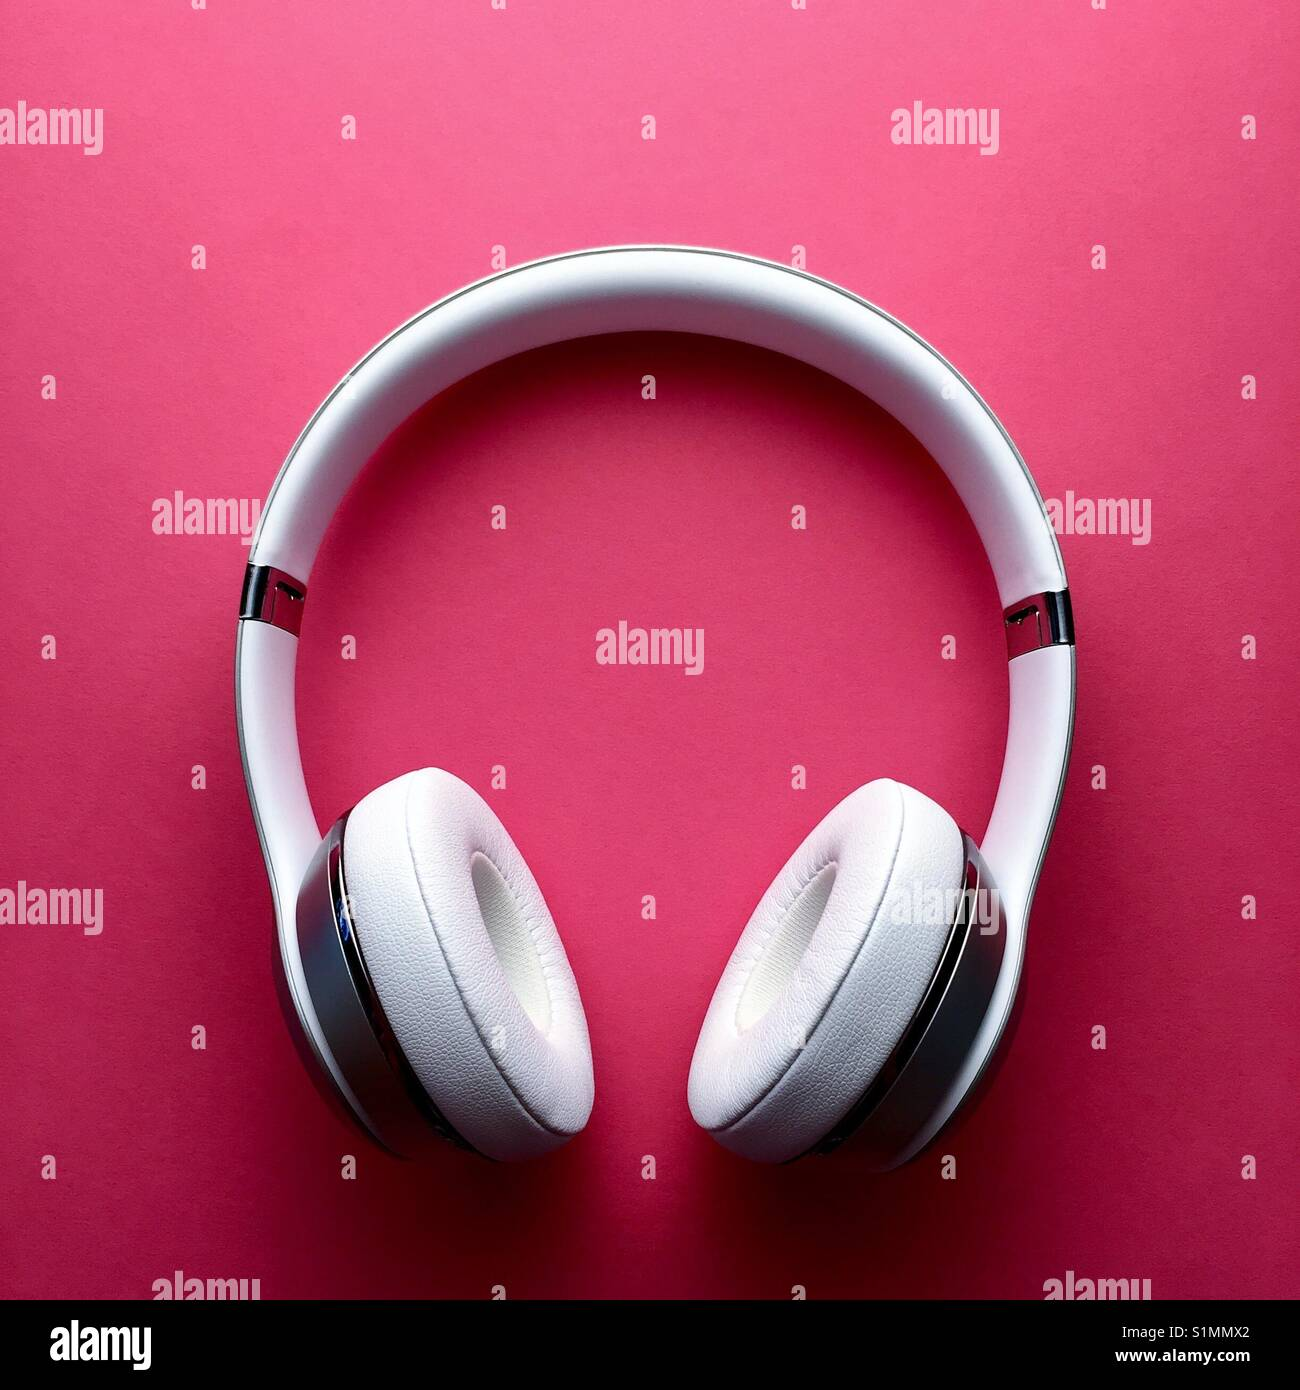 A set of white wireless headphones on a rich pink background - Stock Image